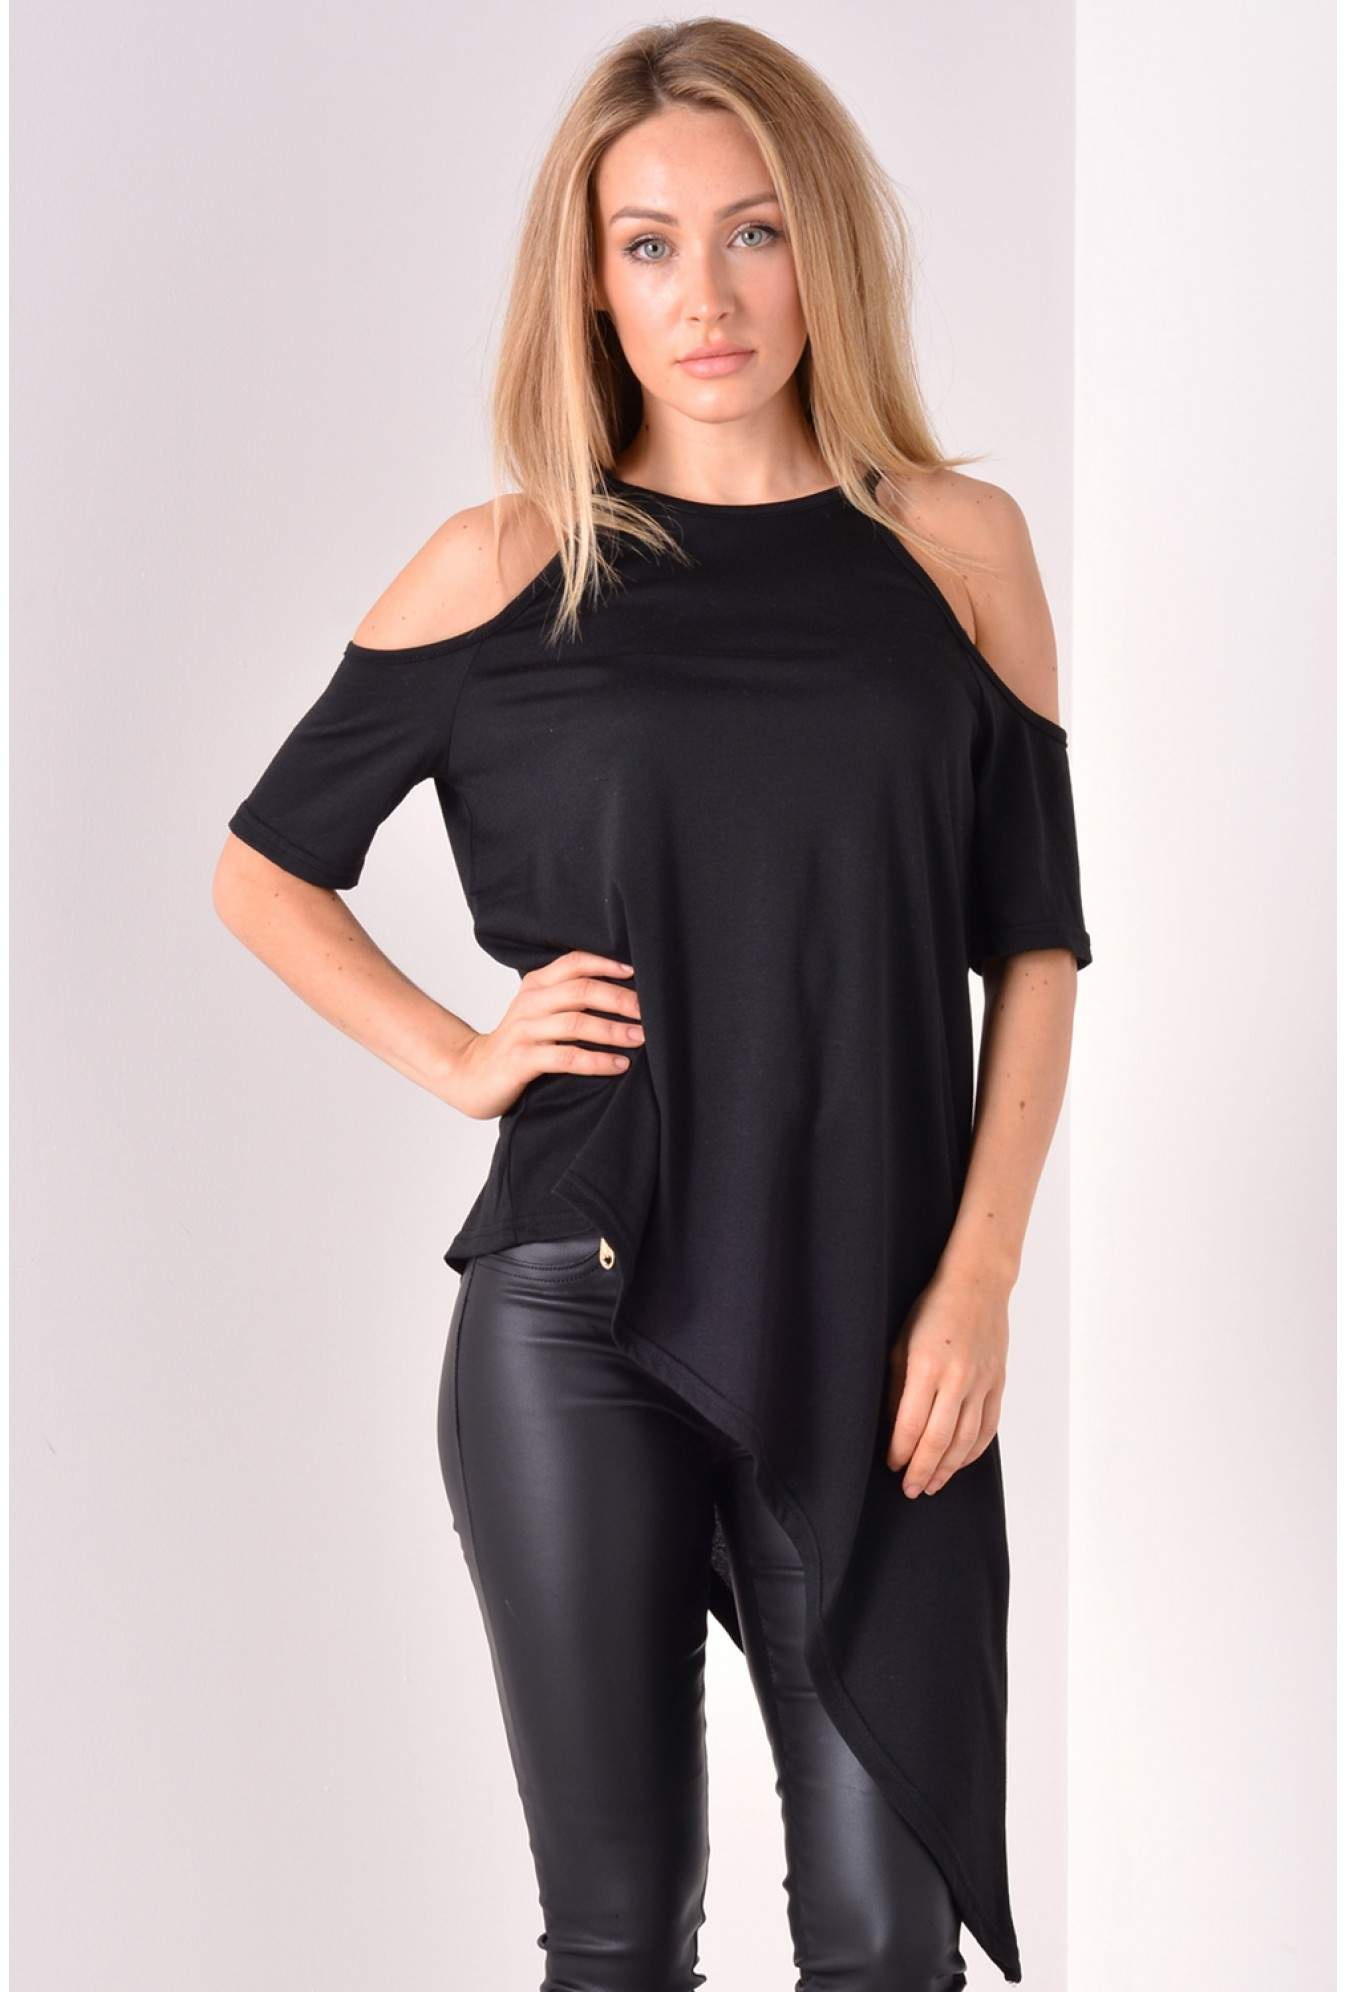 b1615b09ffde1 AX Paris Juniper Cut Out Shoulder Asymmetric Top in Black | iCLOTHING